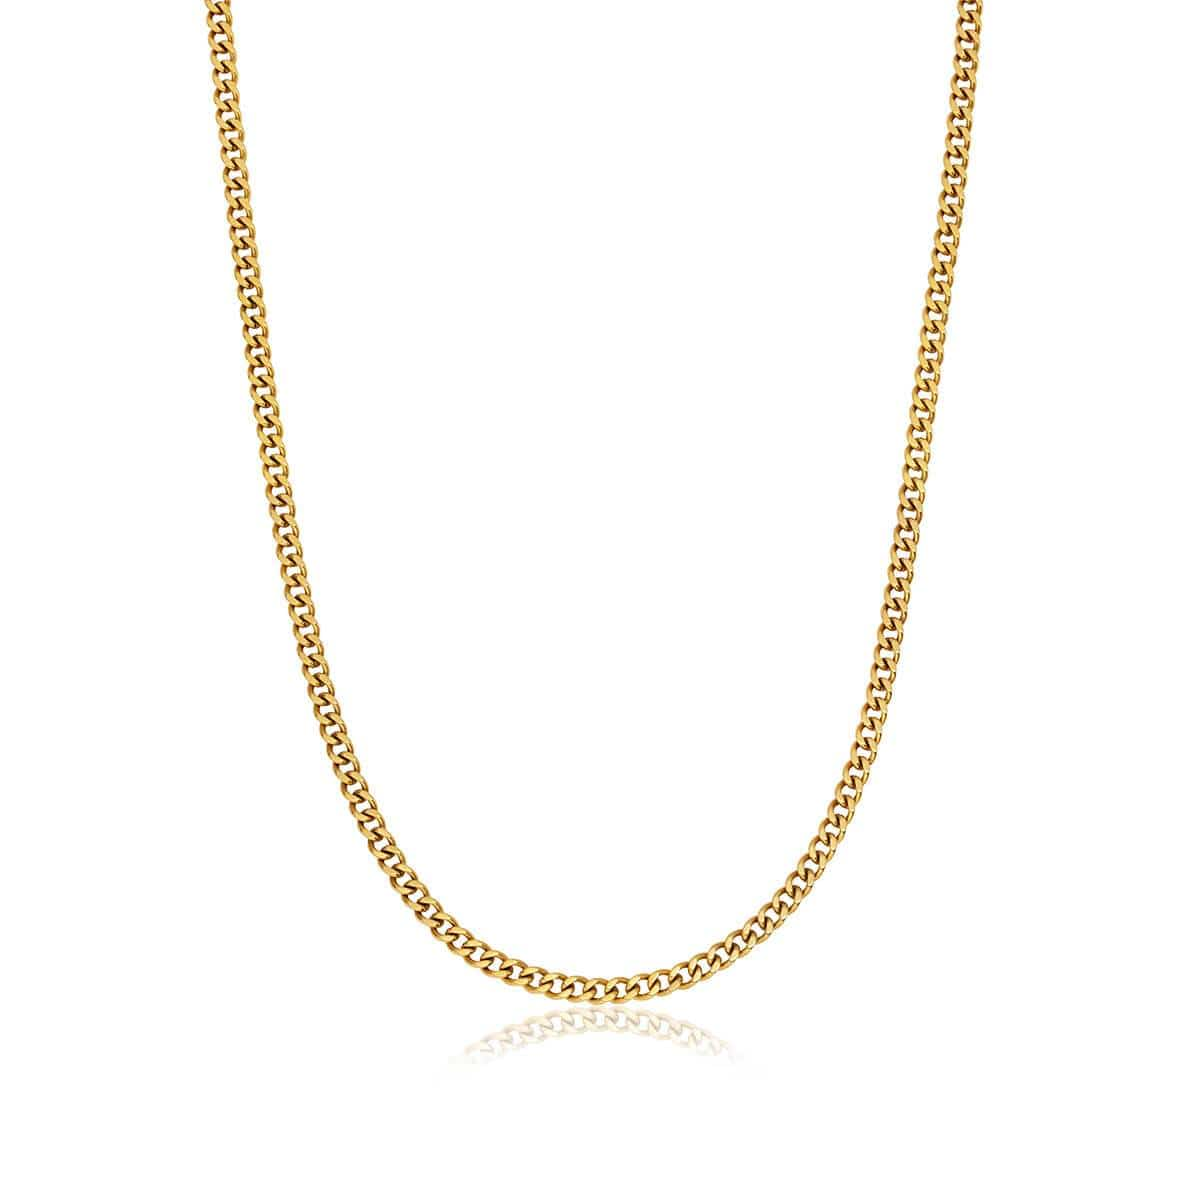 Selected Small Curb Chain Necklace (Gold)